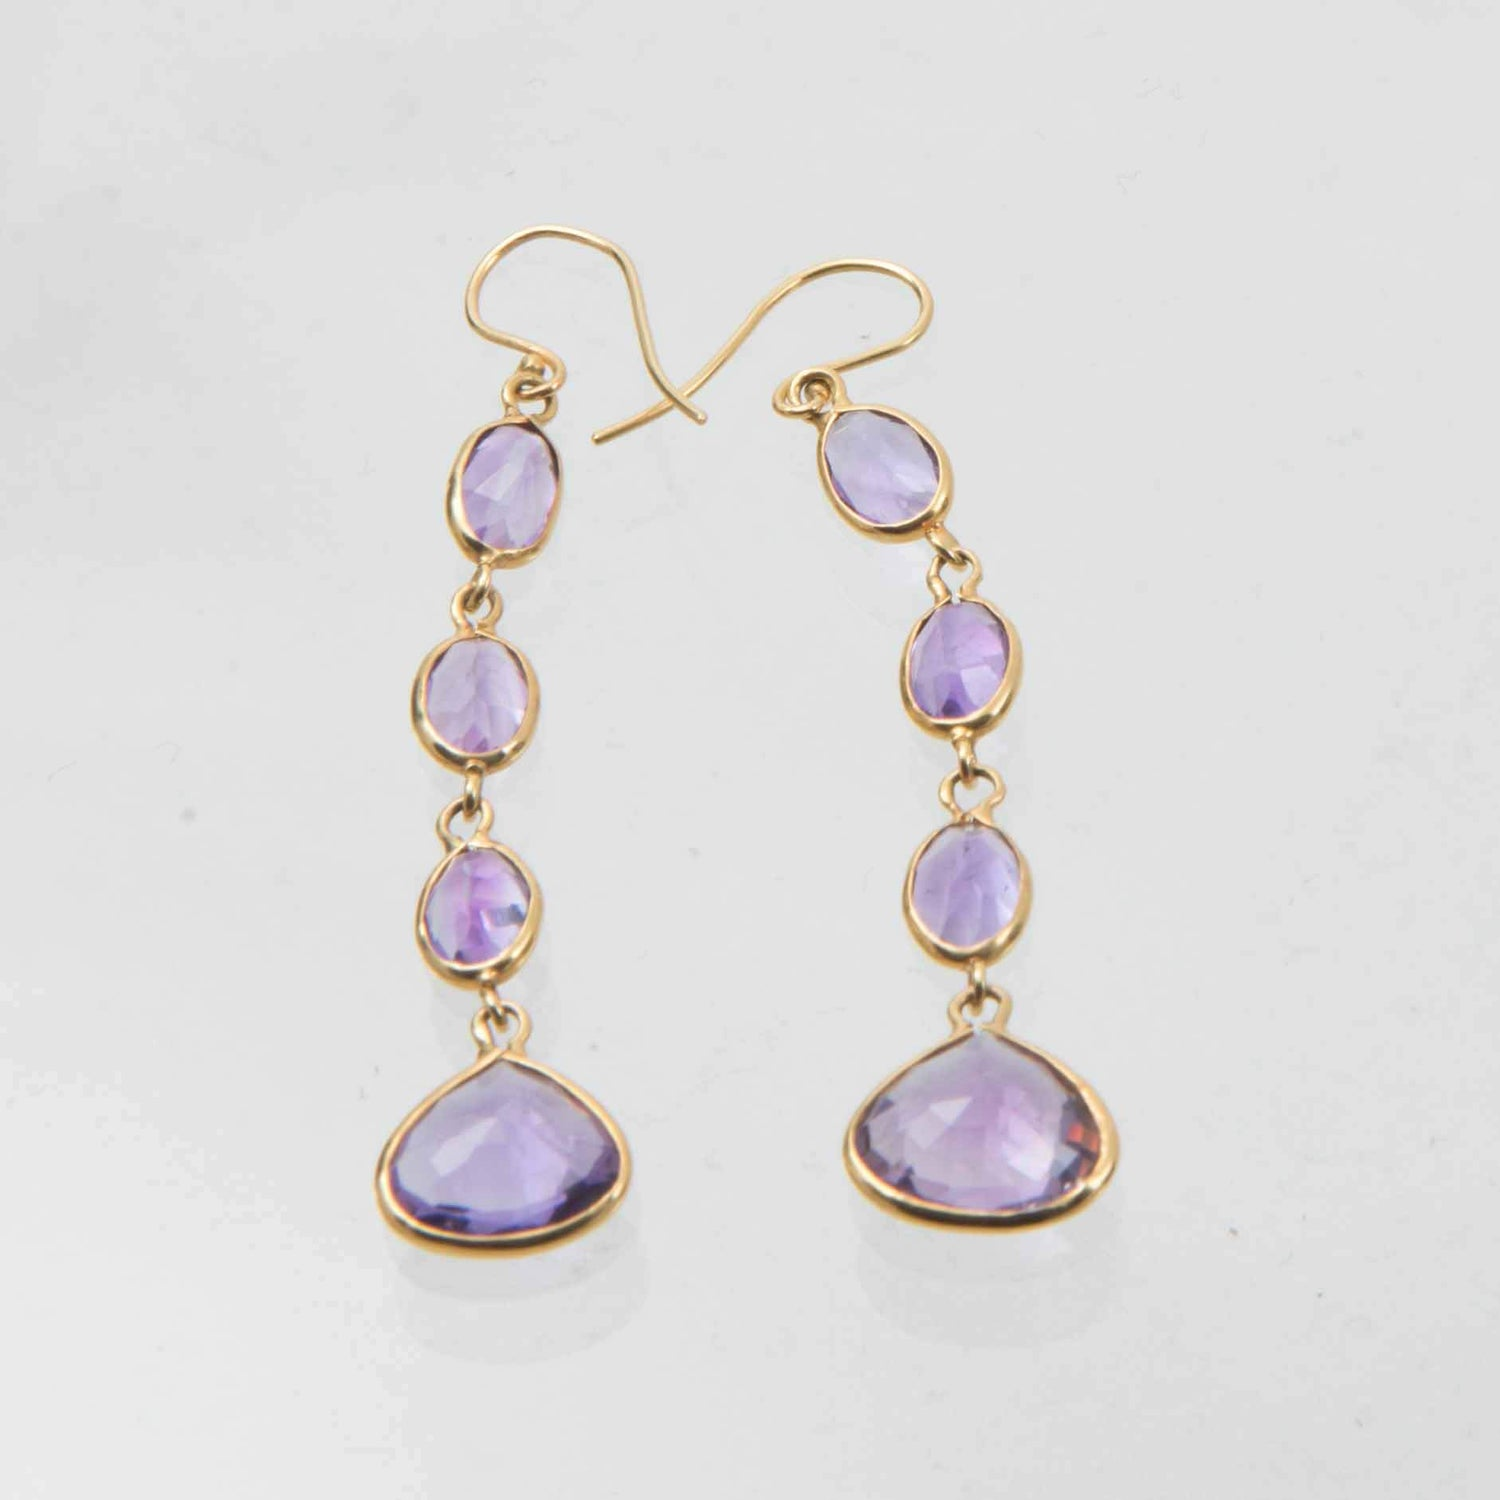 Burmese Amethyst Drop Earrings